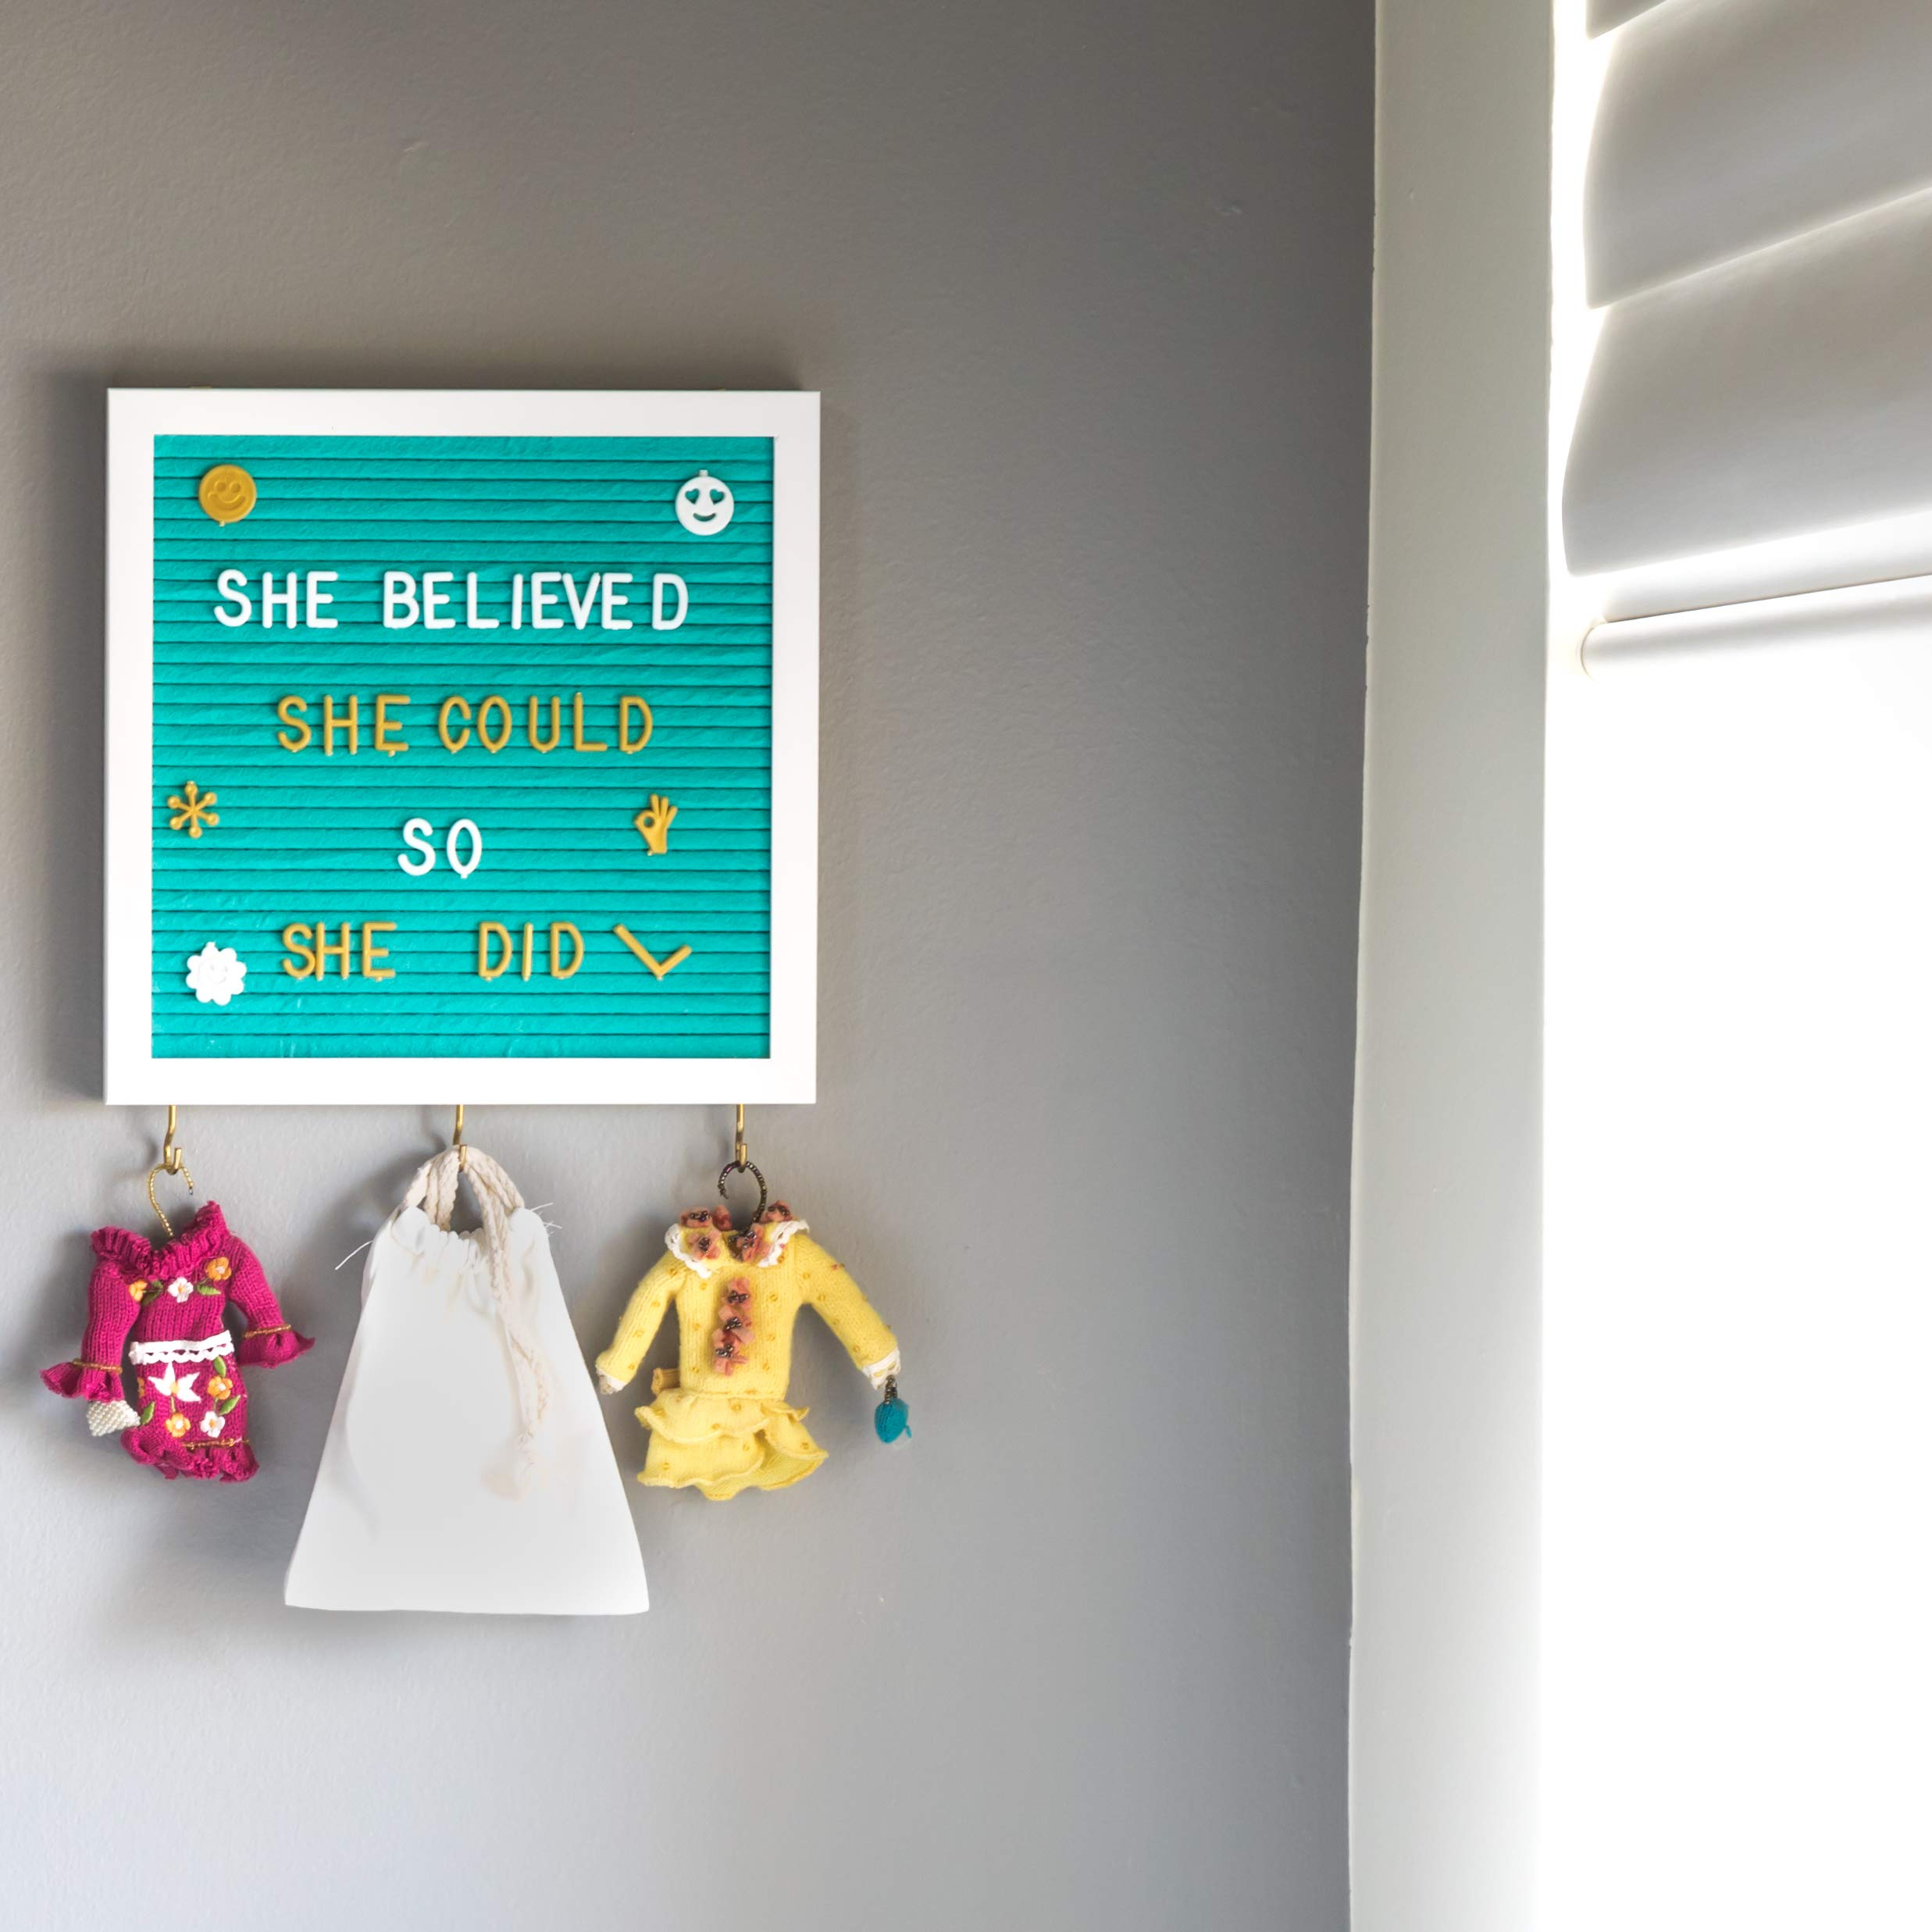 Felt Letter Board 10X10'' With 3 Key Hangers & 720 Changeable Letters | Sleek Wooden Frame, Unique Teal Color, Wall Mount Hook | For Messages, Notes, Quotes, Office, Menus, Word Games & More by RODNAS (Image #3)